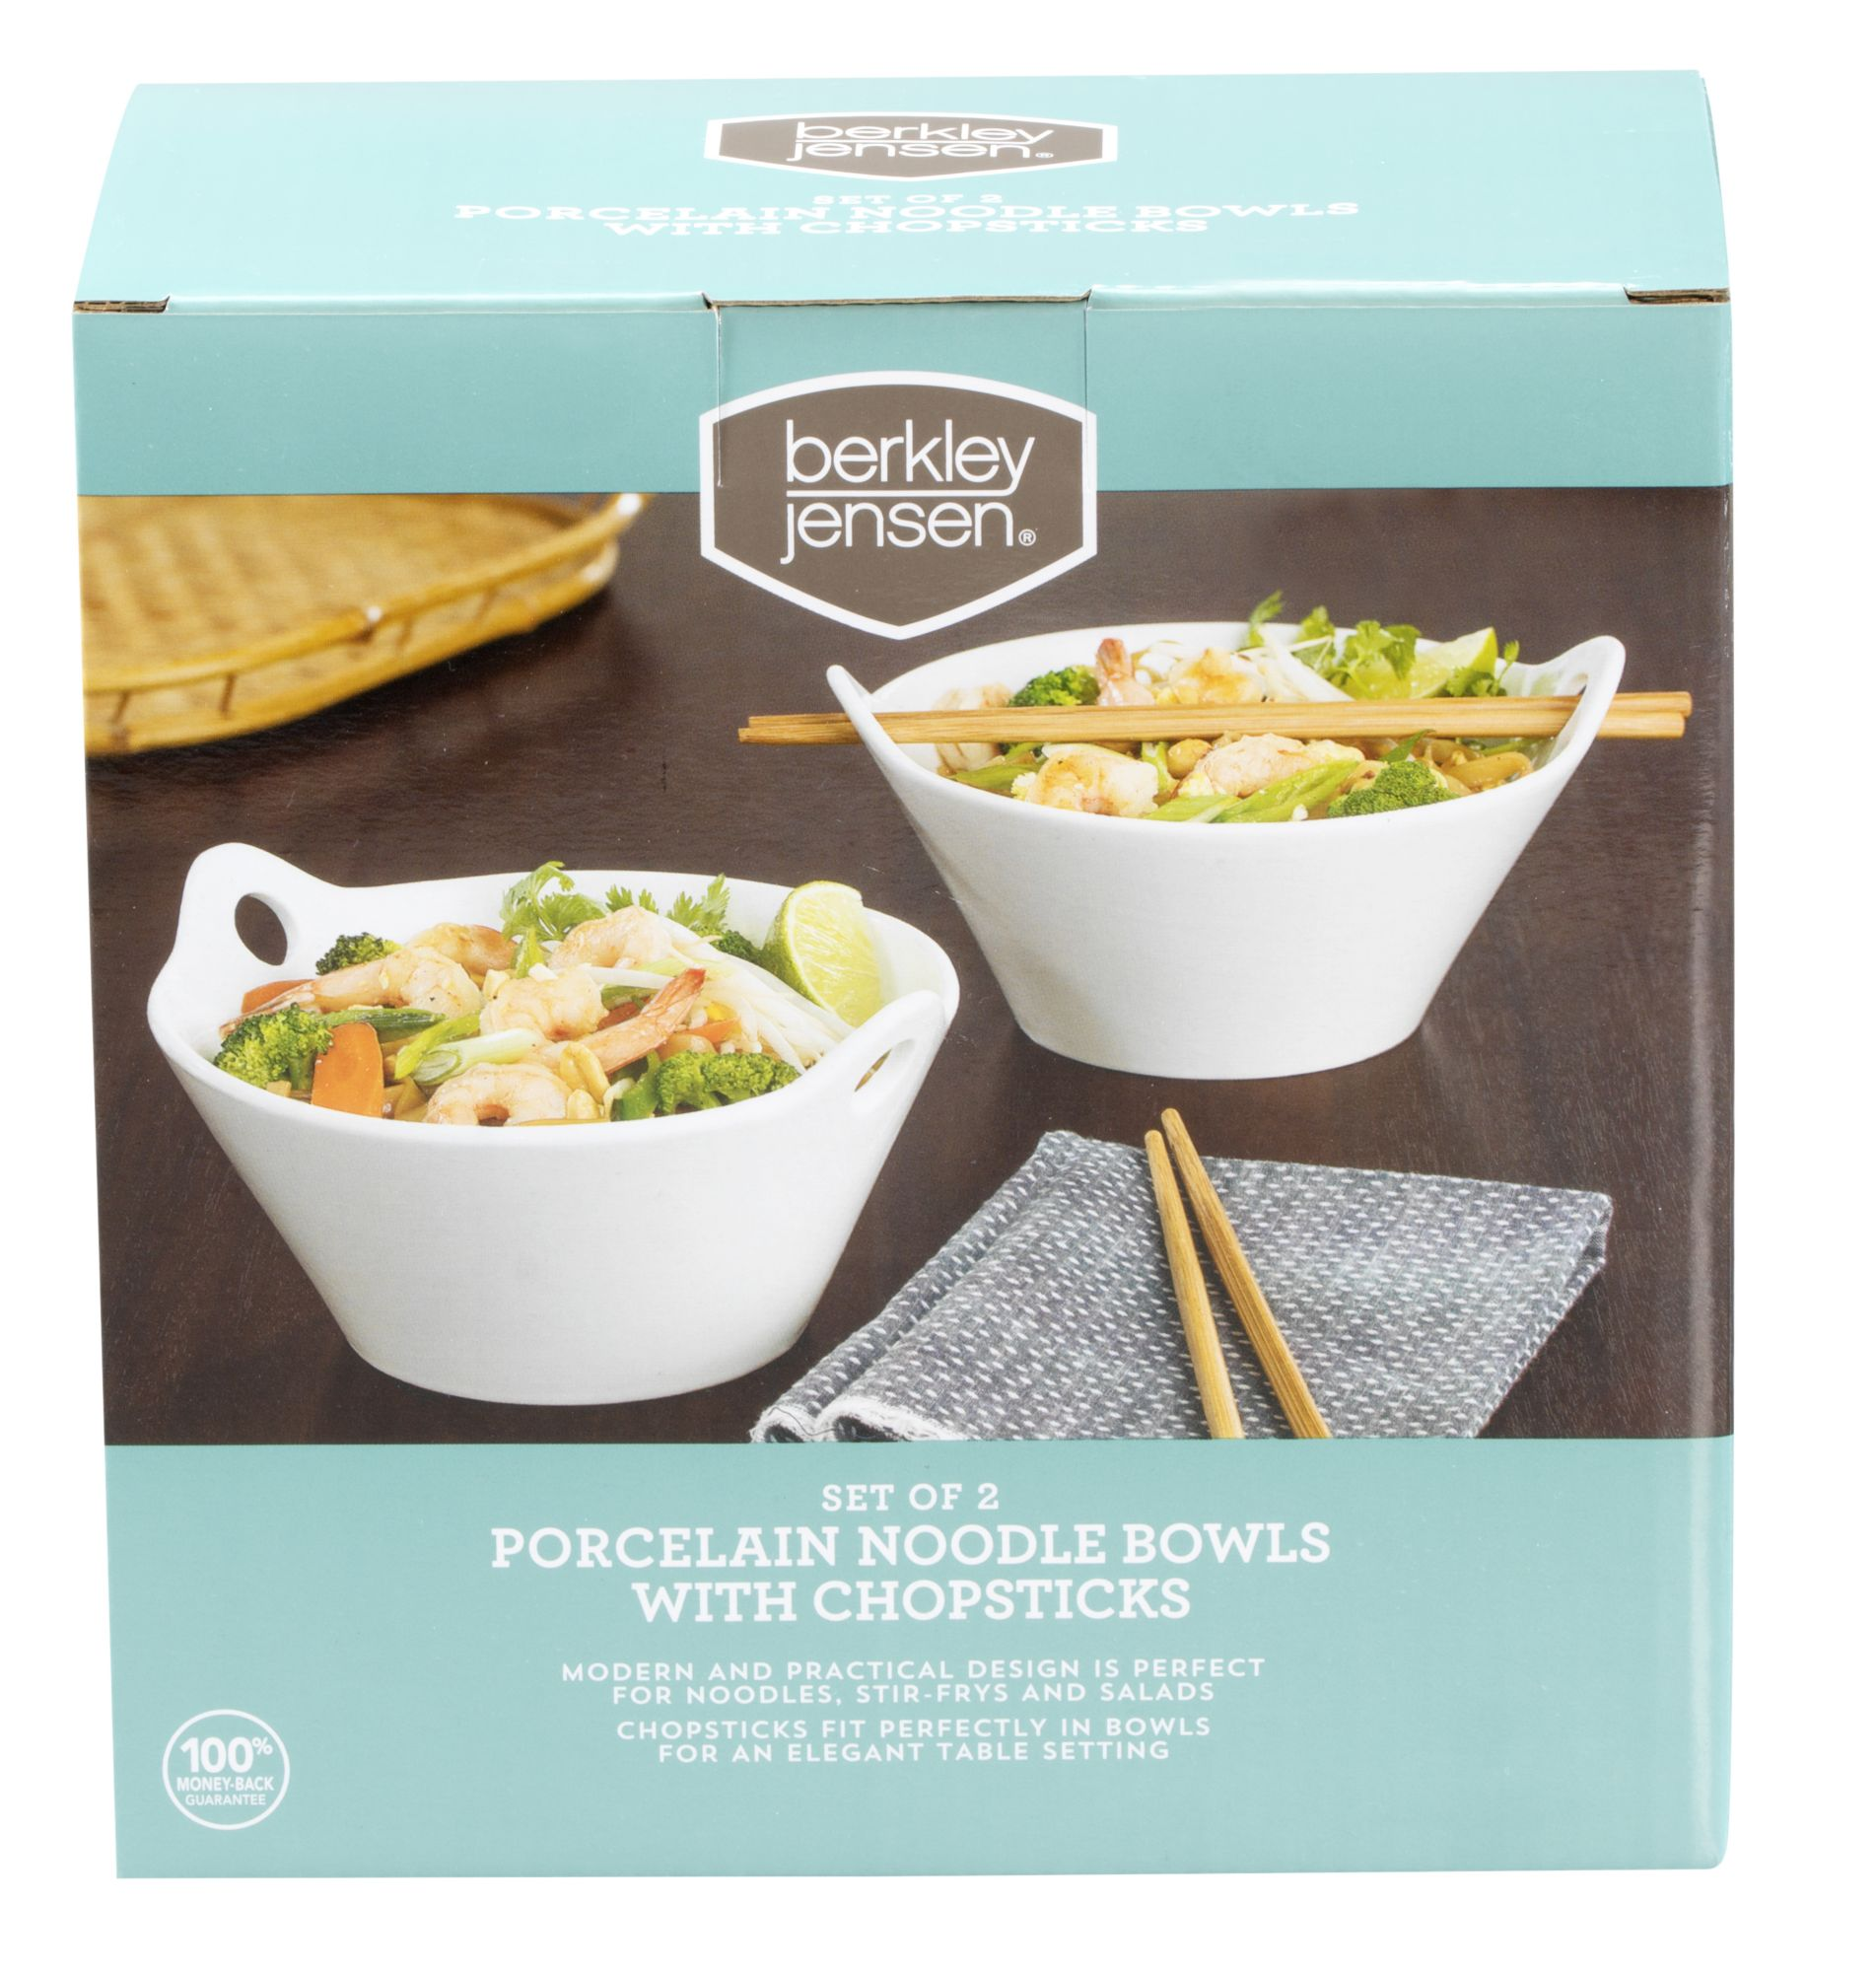 Berkley jensen porcelain noodle bowls with chopsticks pk bjs